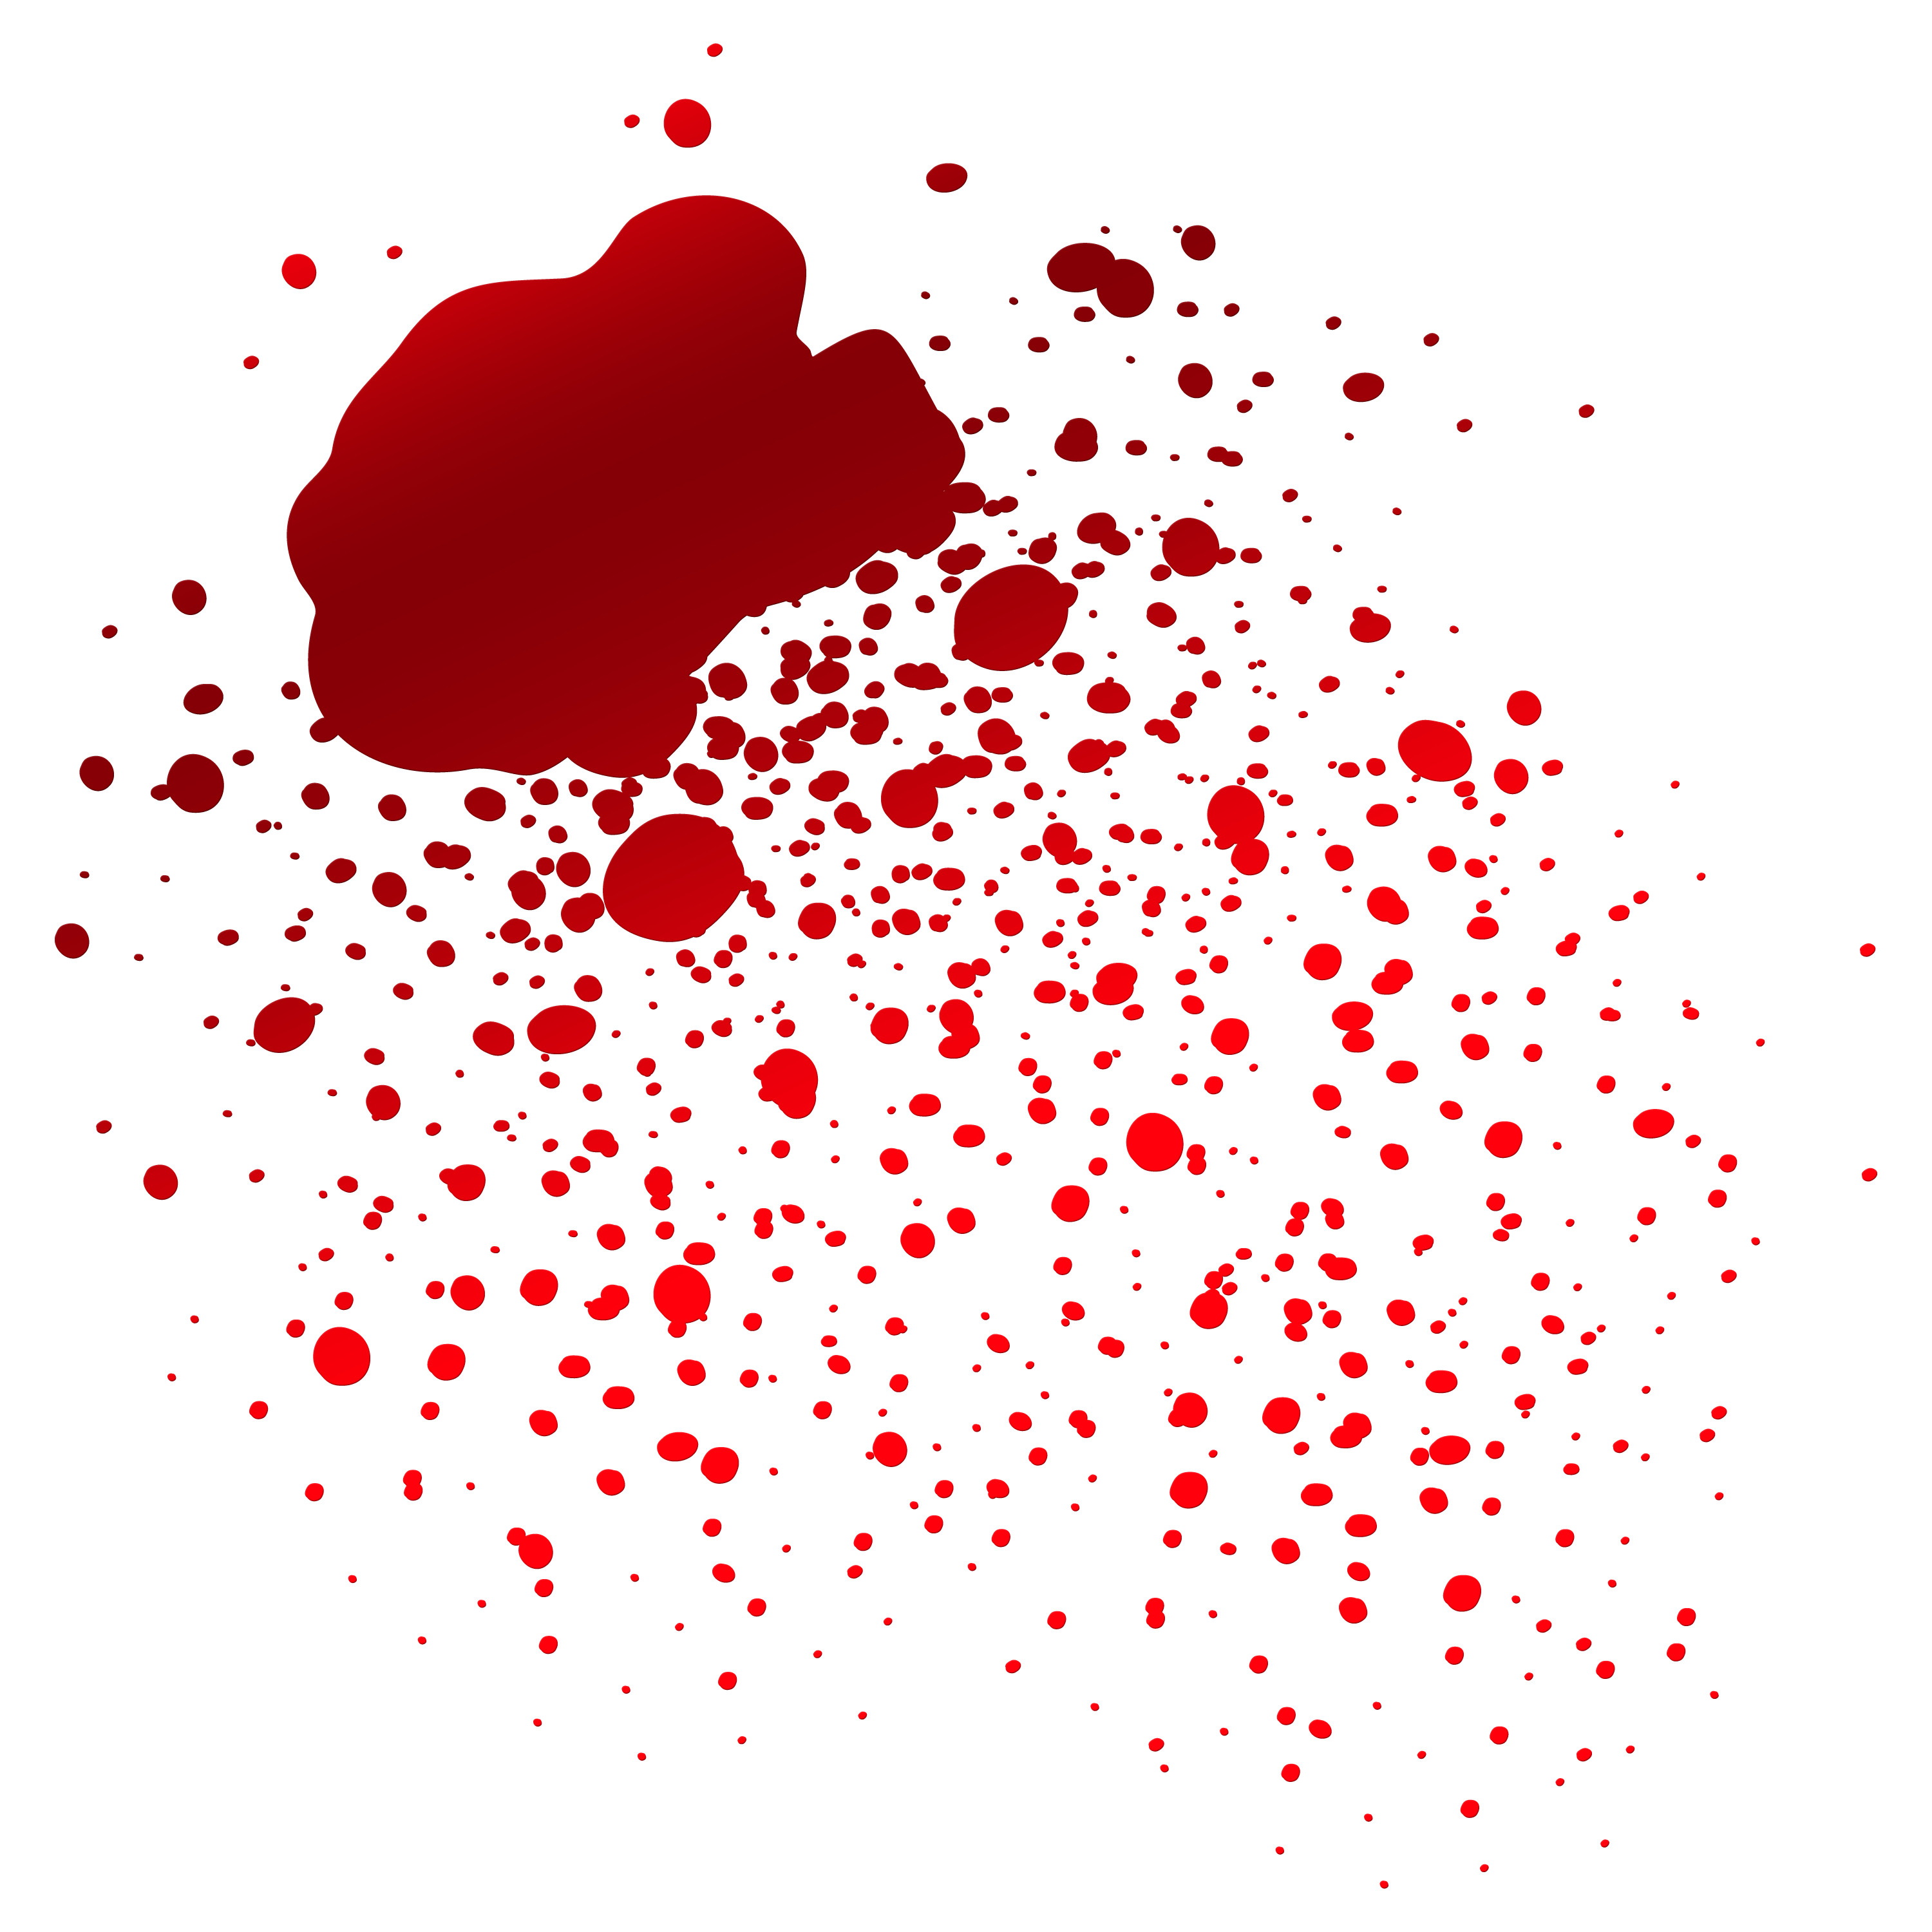 Download free transparent image. Realistic dripping blood png